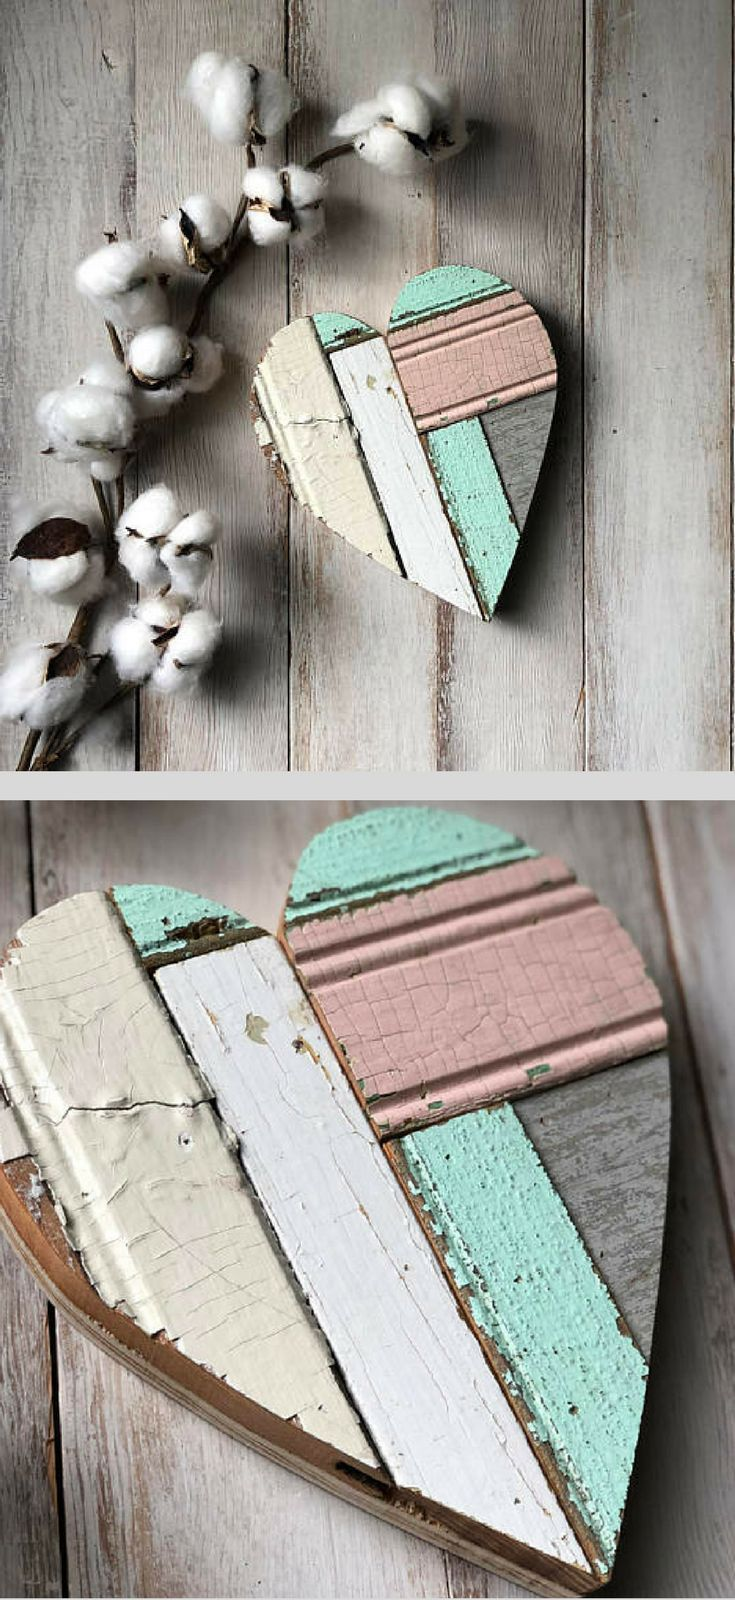 I really like how the different textures and finishes look next to each other! Small reclaimed wood heart, Valentine Heart, Girl Nursery Decor, Shabby Chic Decor, Fixer Upper Decor, Farmhouse Decor, Rustic Farmhouse Nursery, Shabby Chic Nursery, Bedroom Decor, Heart Sign, Farmhouse Wall Art, Gallery Wall Ideas, Farmhouse Wedding Decor, Baby Shower Gift Idea #ad #shabbychicbedroomsdecoratingideas